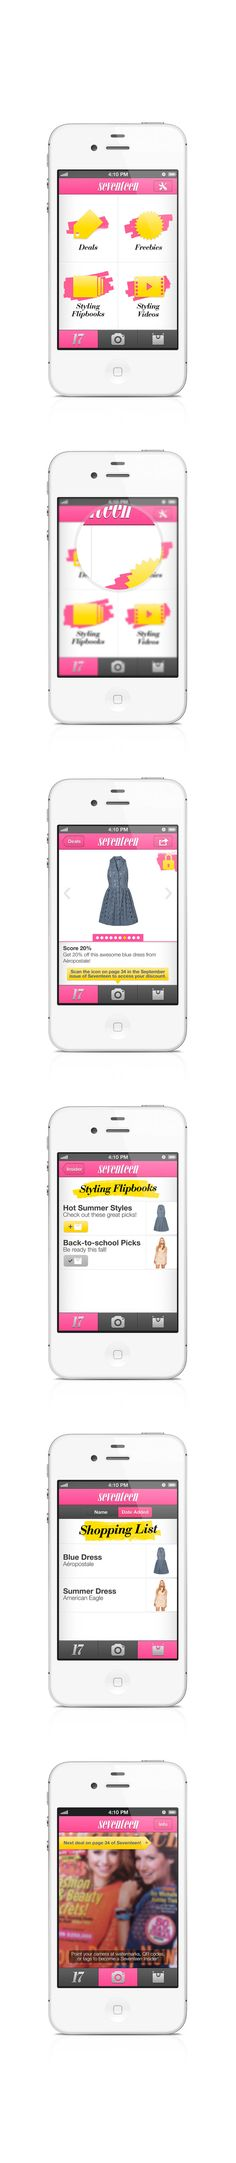 Seventeen Shopping Insider App (proposed) by Paul Gates, via Behance *** A companion app for Seventeen magazine.